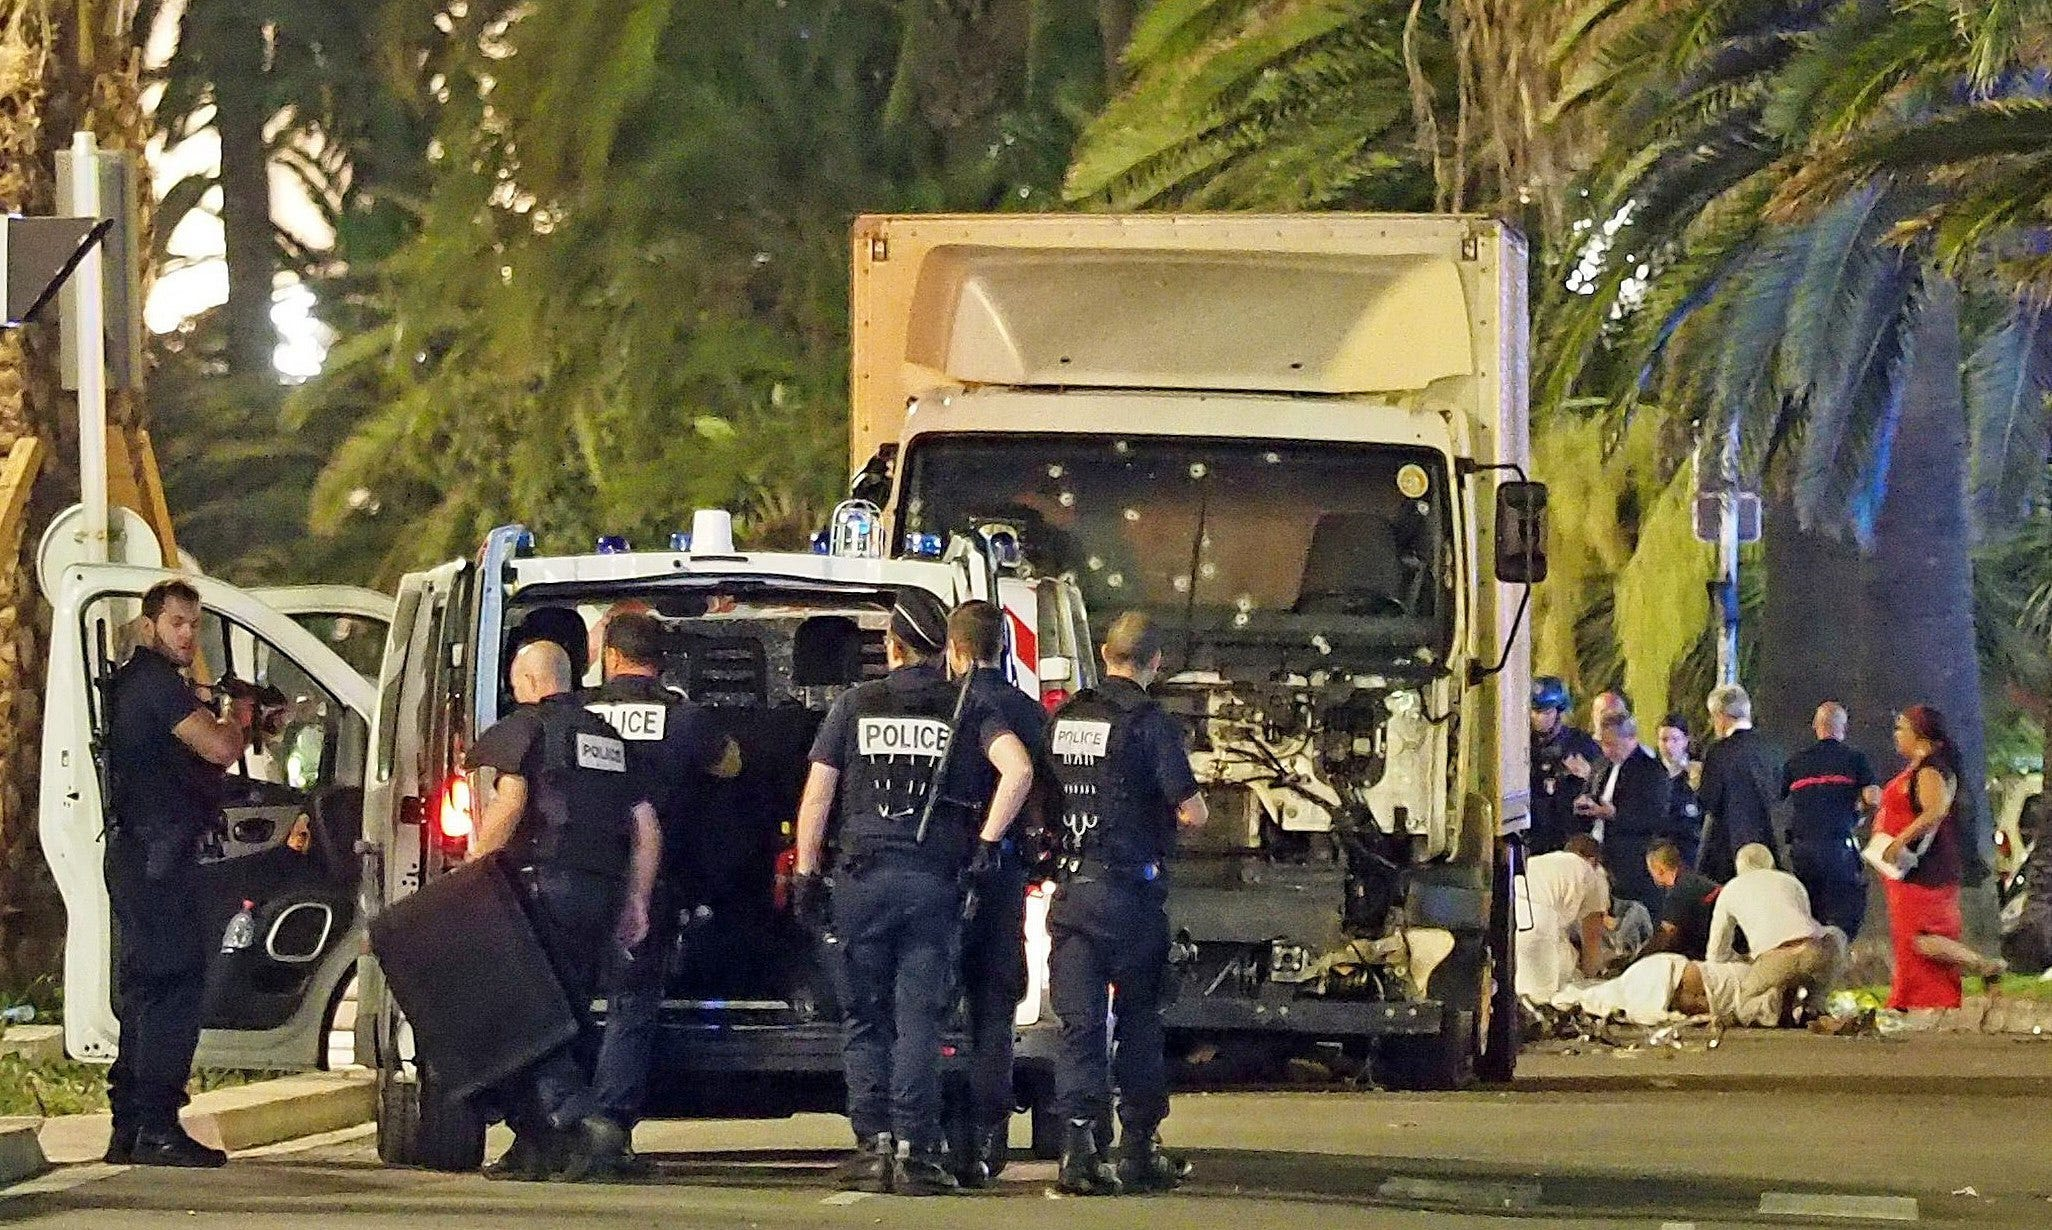 Two held as details emerge about France truck attacker | World ...